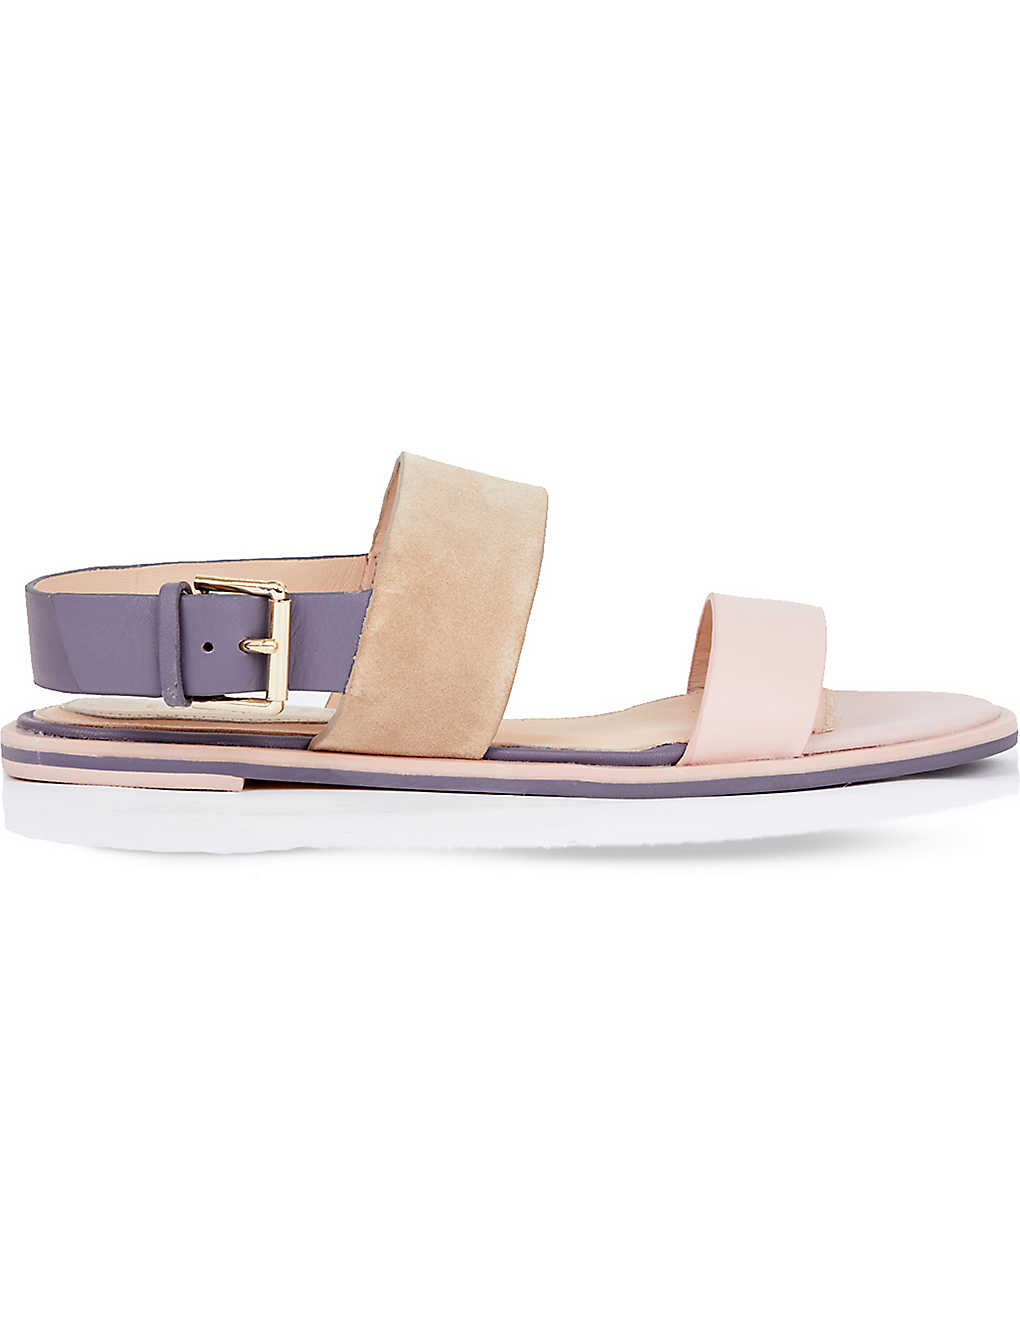 4fe507f30bbf2 TED BAKER - Colour by Numbers danaeii strap detail flat sandals ...